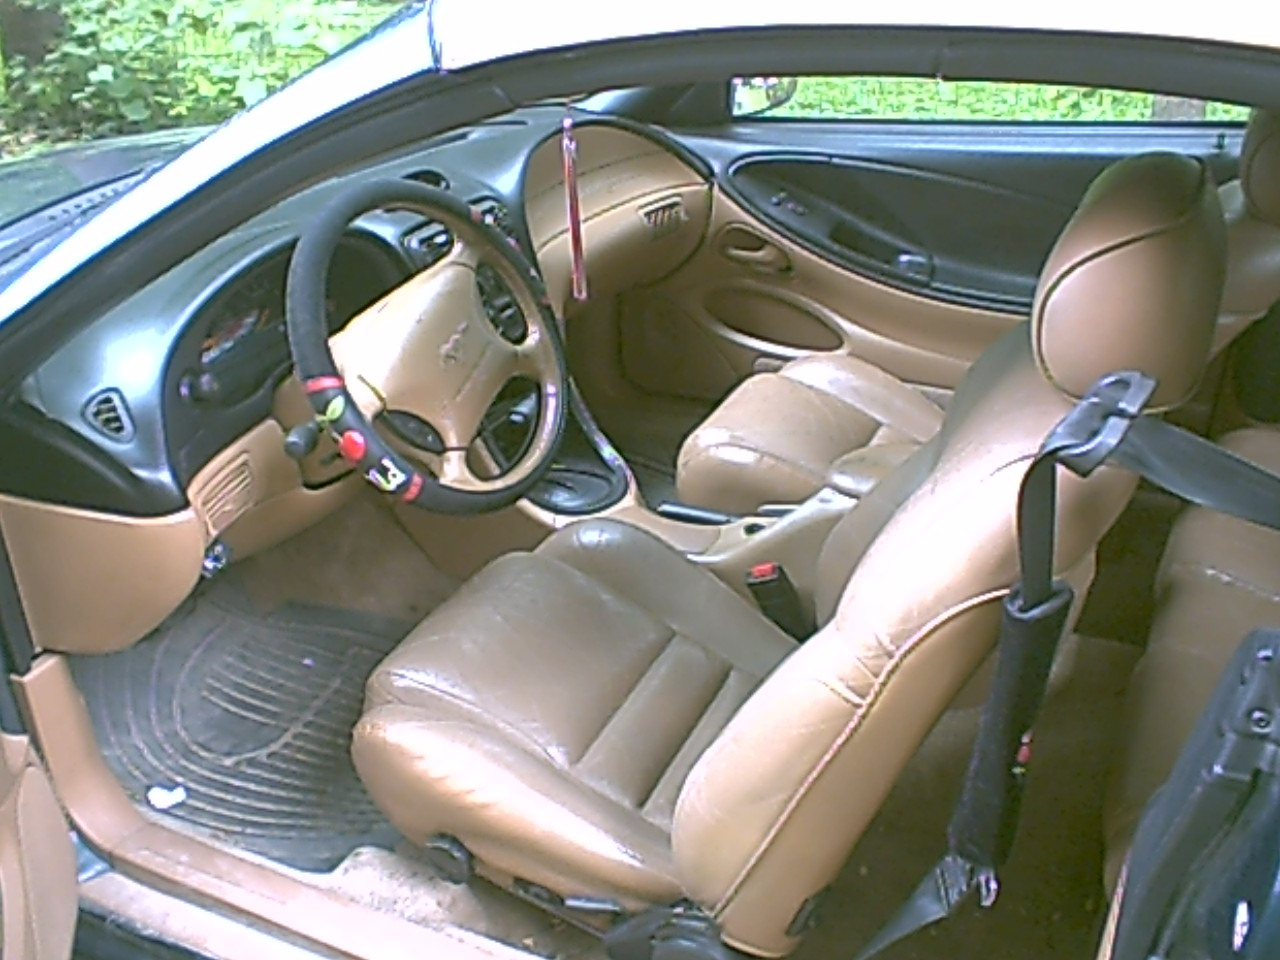 1996 Ford Mustang Interior Pictures Cargurus